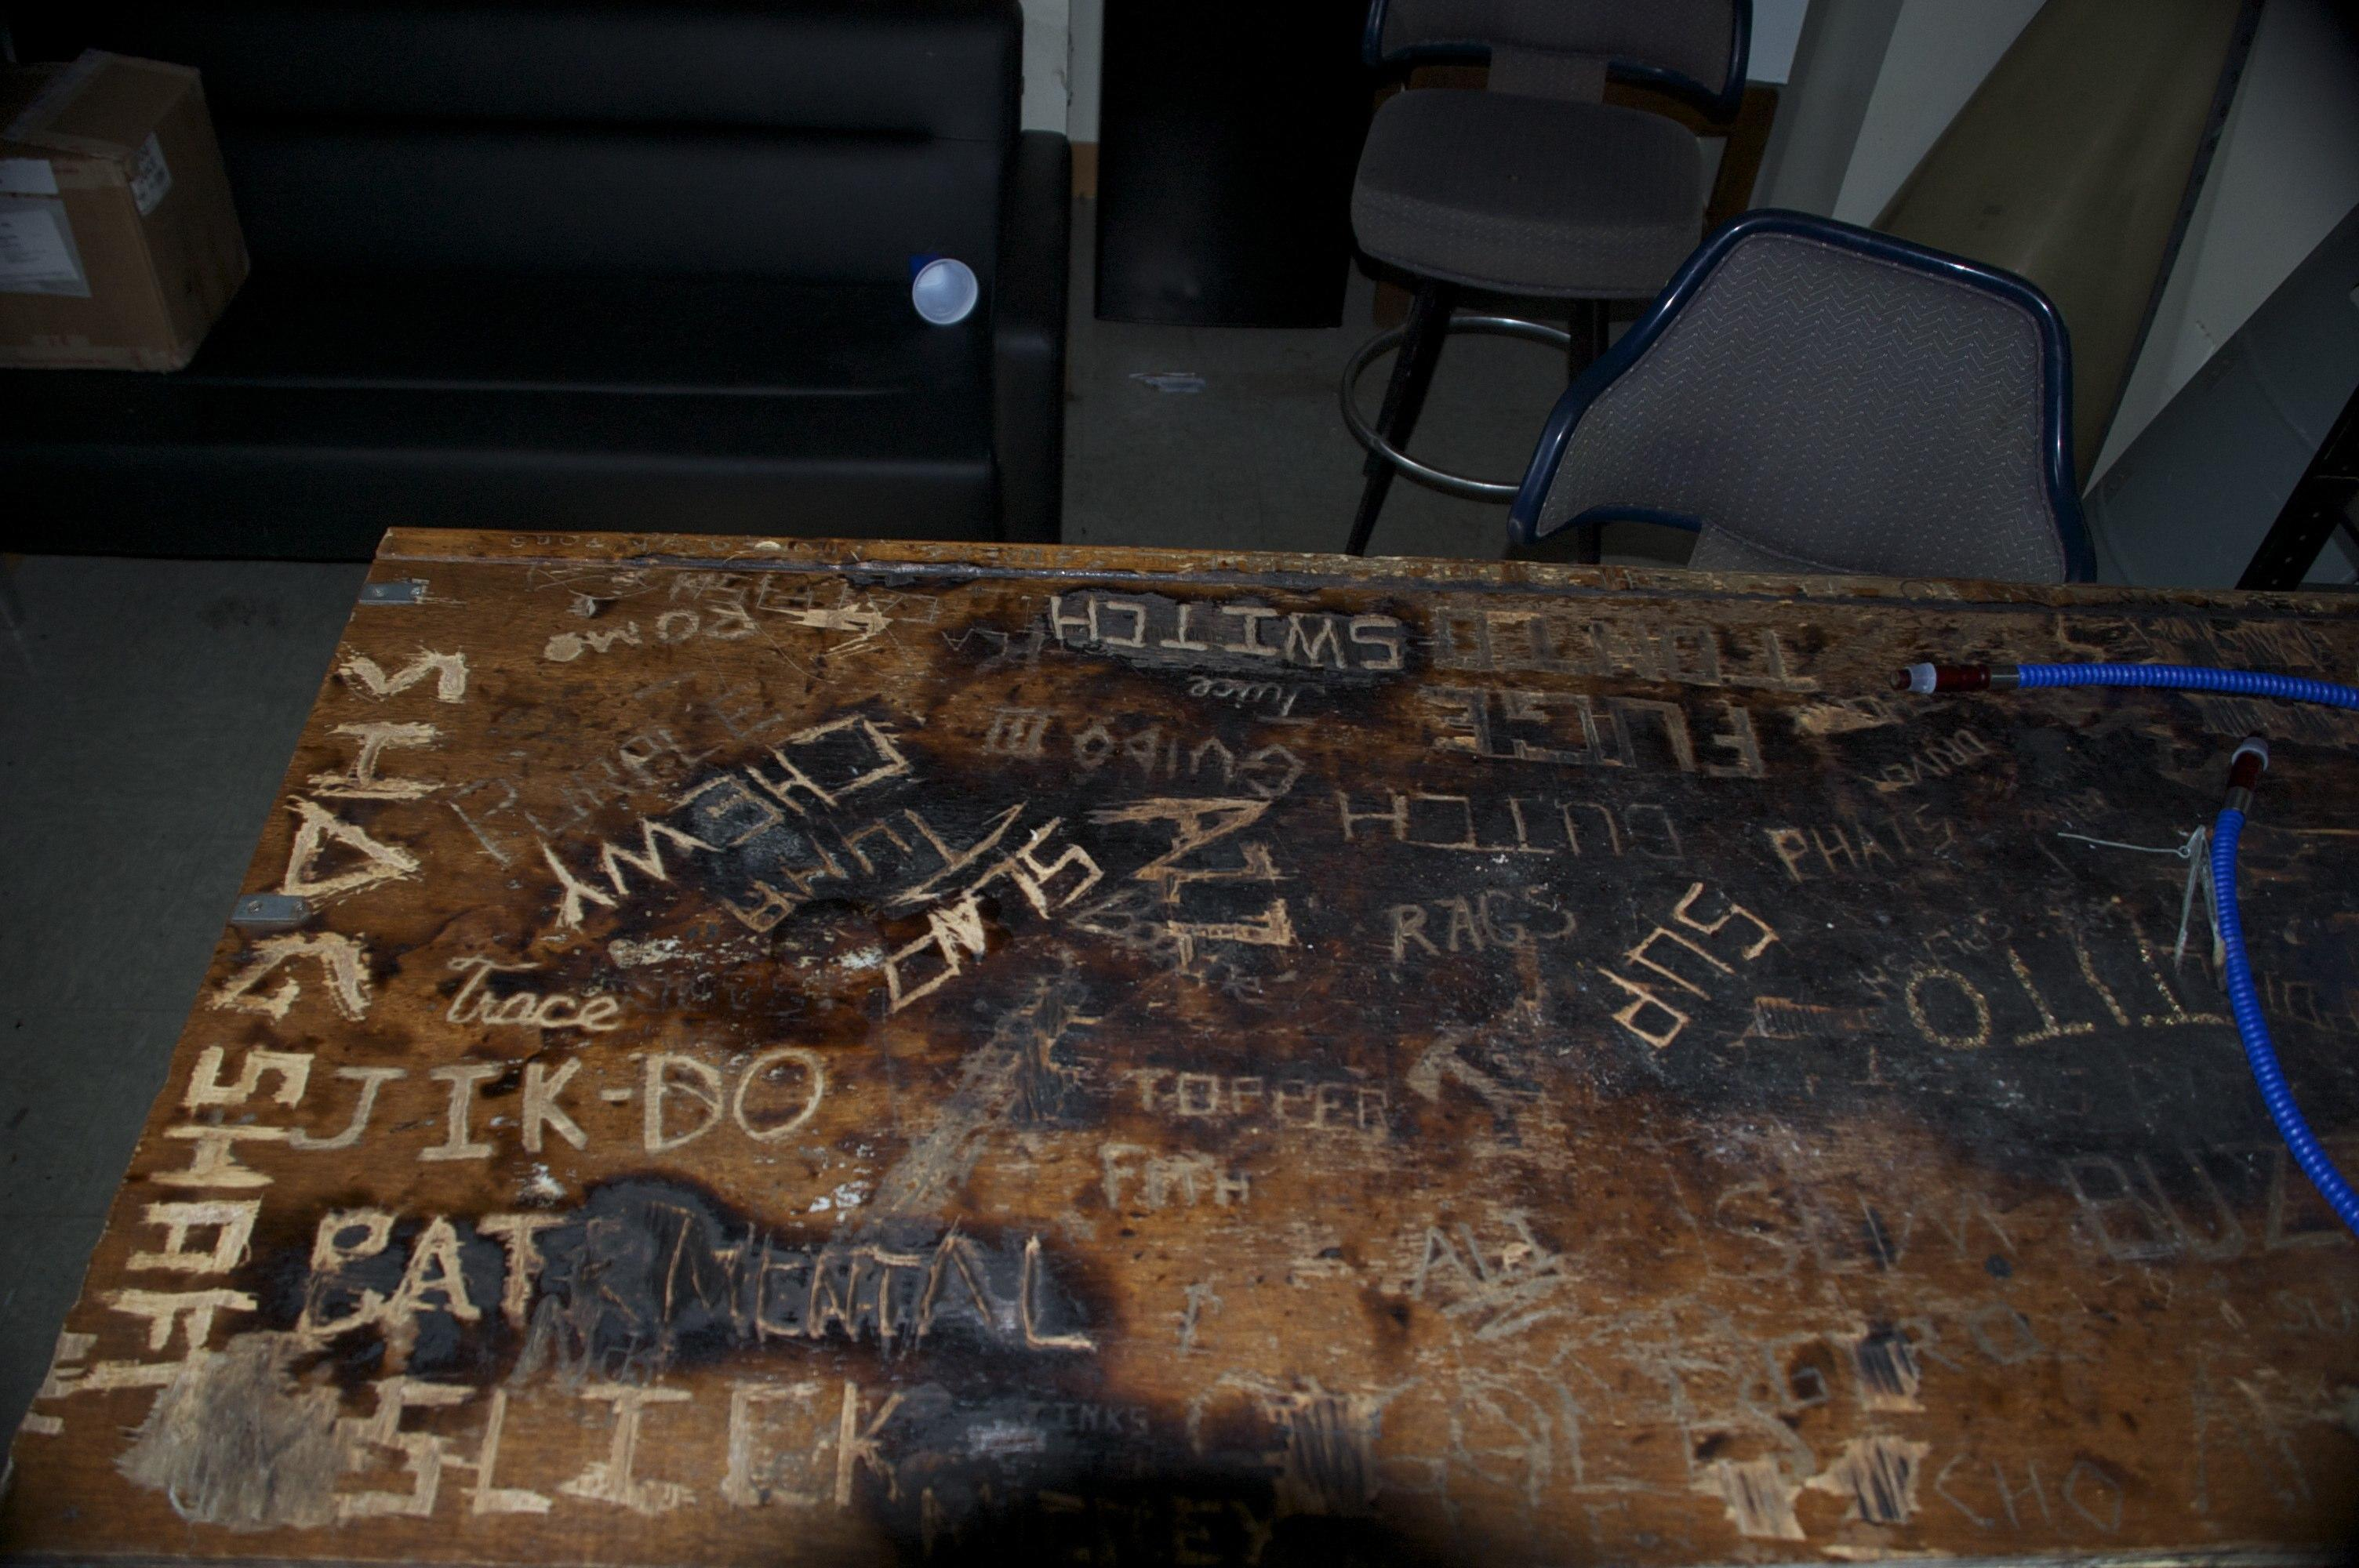 Carved names and scorching on bar top.